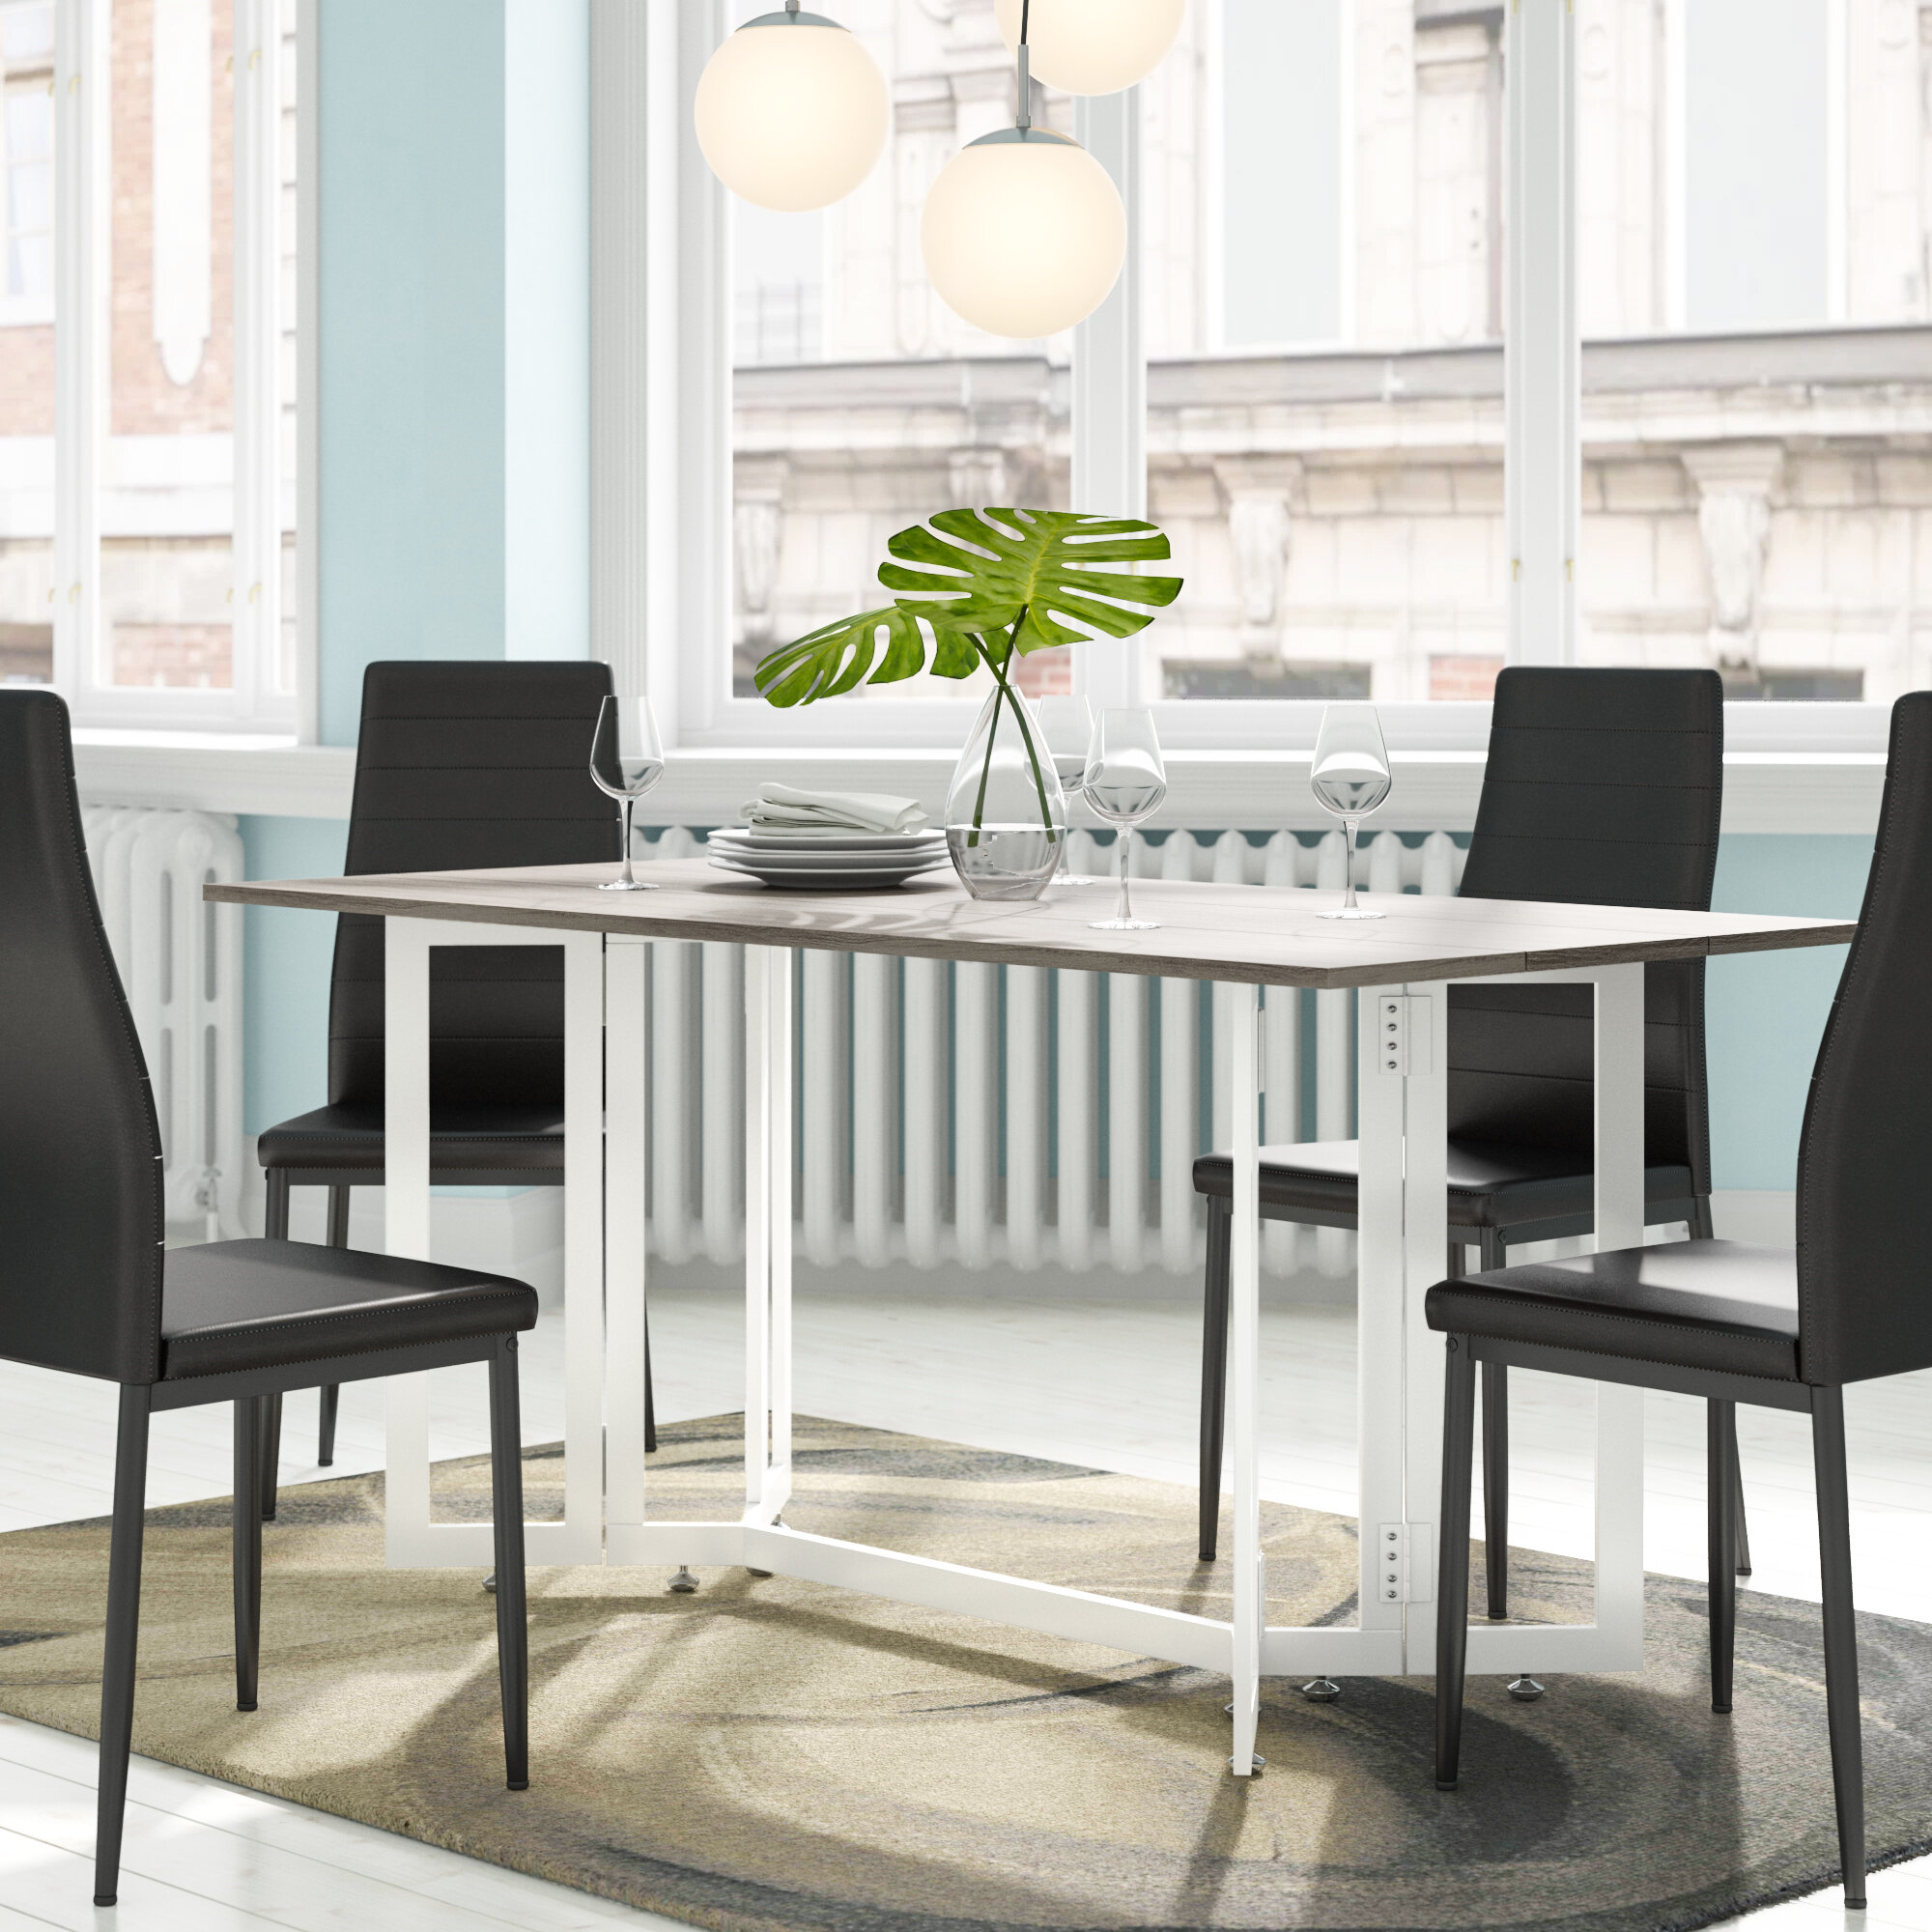 Home Etc Extendable Dining Table Reviews